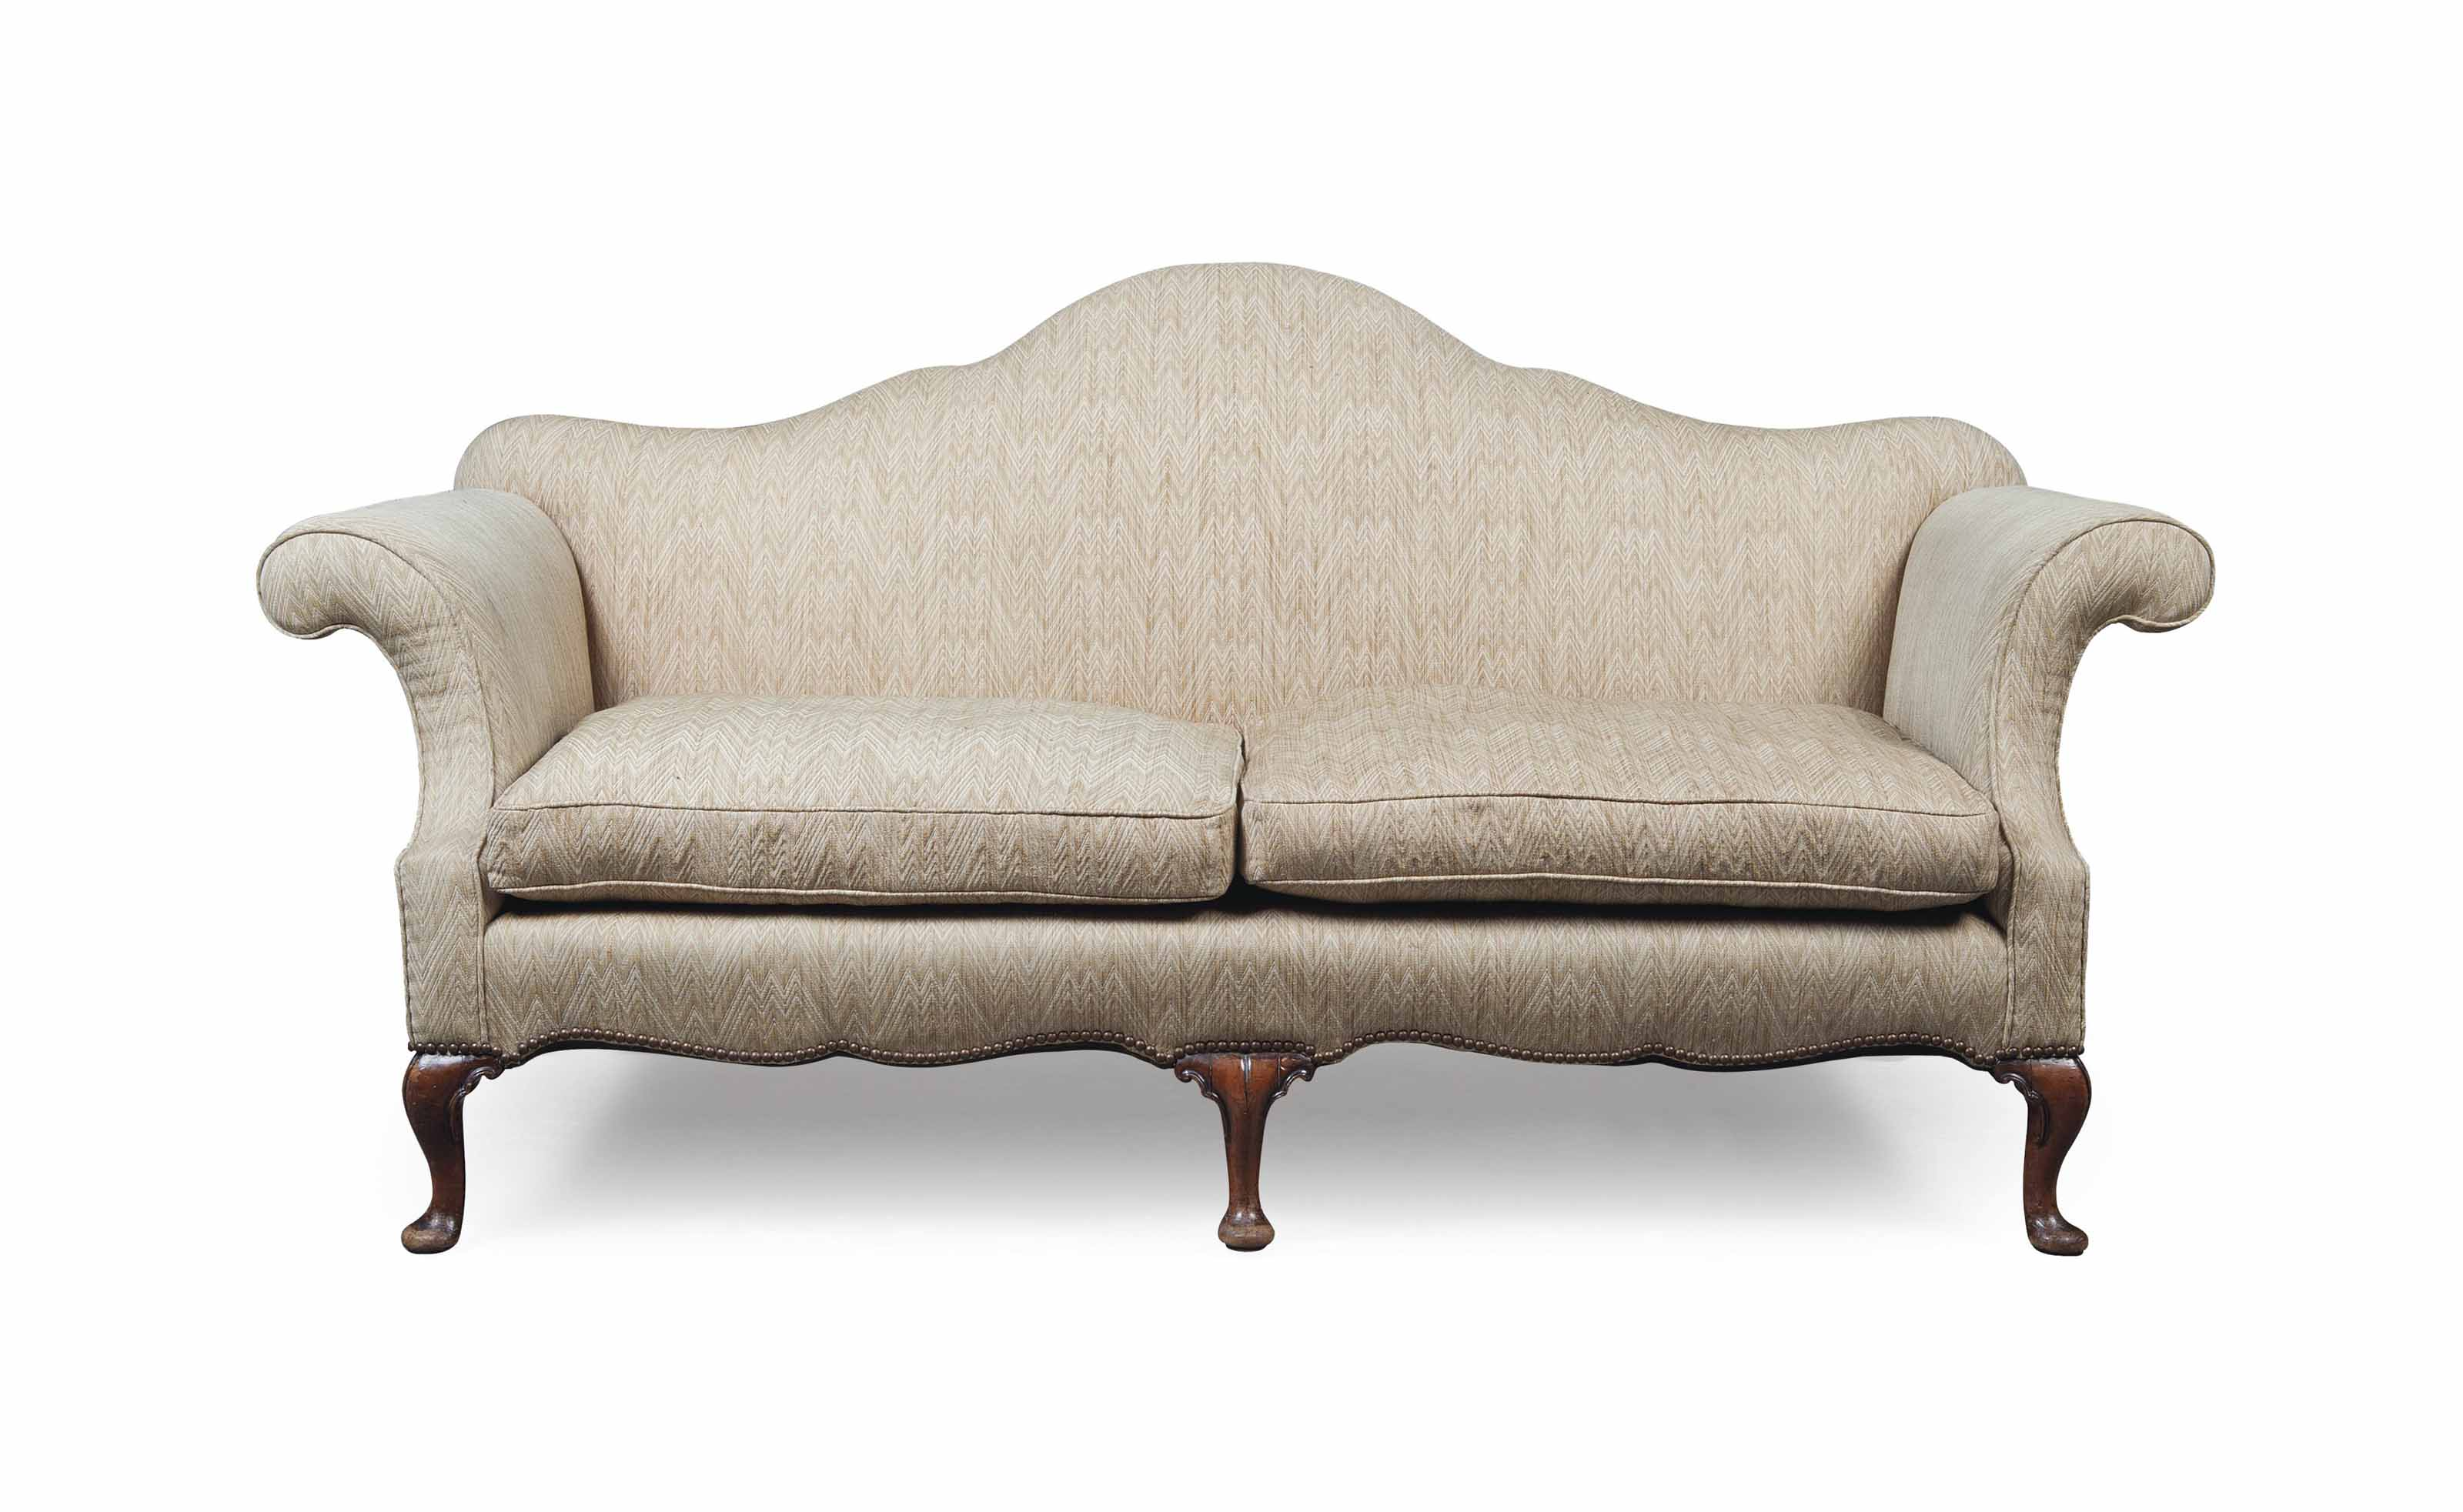 modern cabriole sofa small sectional sofas for es eye design decorating with the french